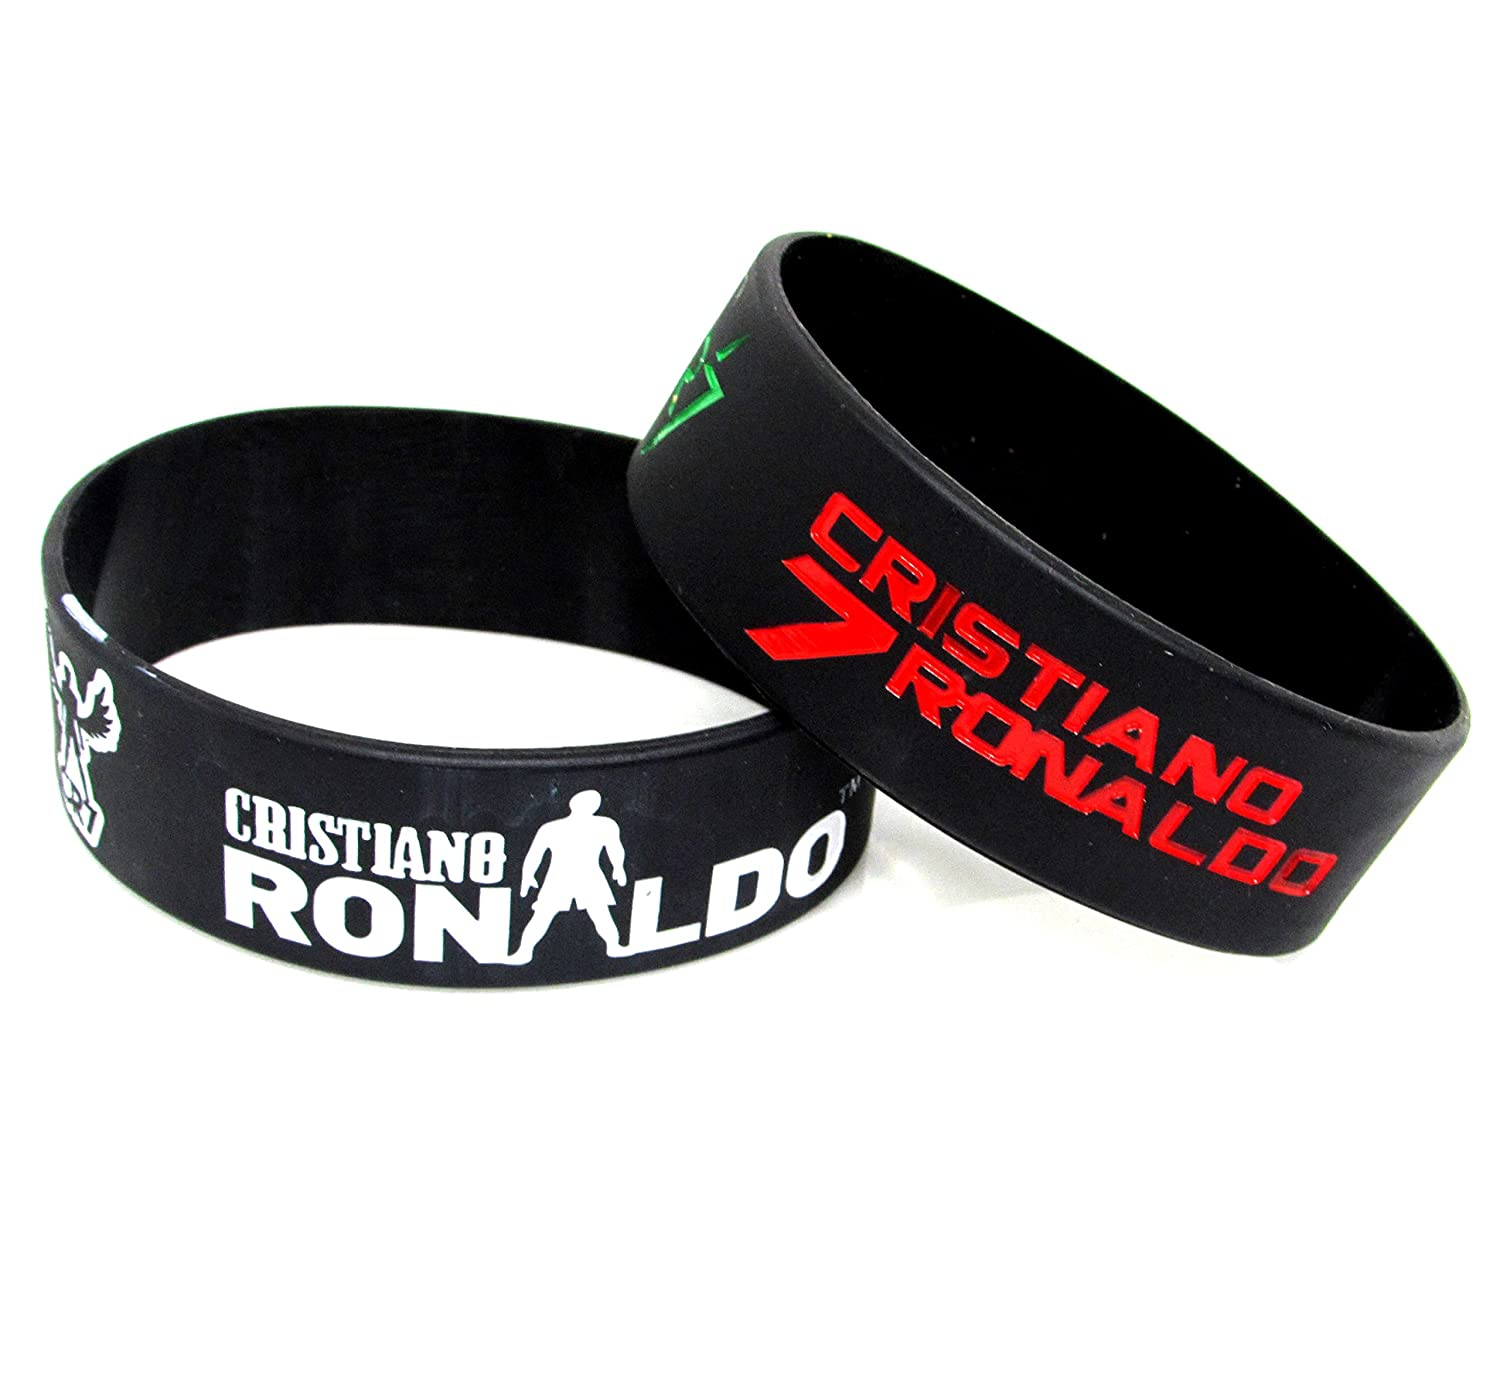 CVANU Men s and Women s Christiano Ronaldo Silicone Wrist Band (Rubber) -  Pack of 2  Amazon.in  Sports c208d33d27